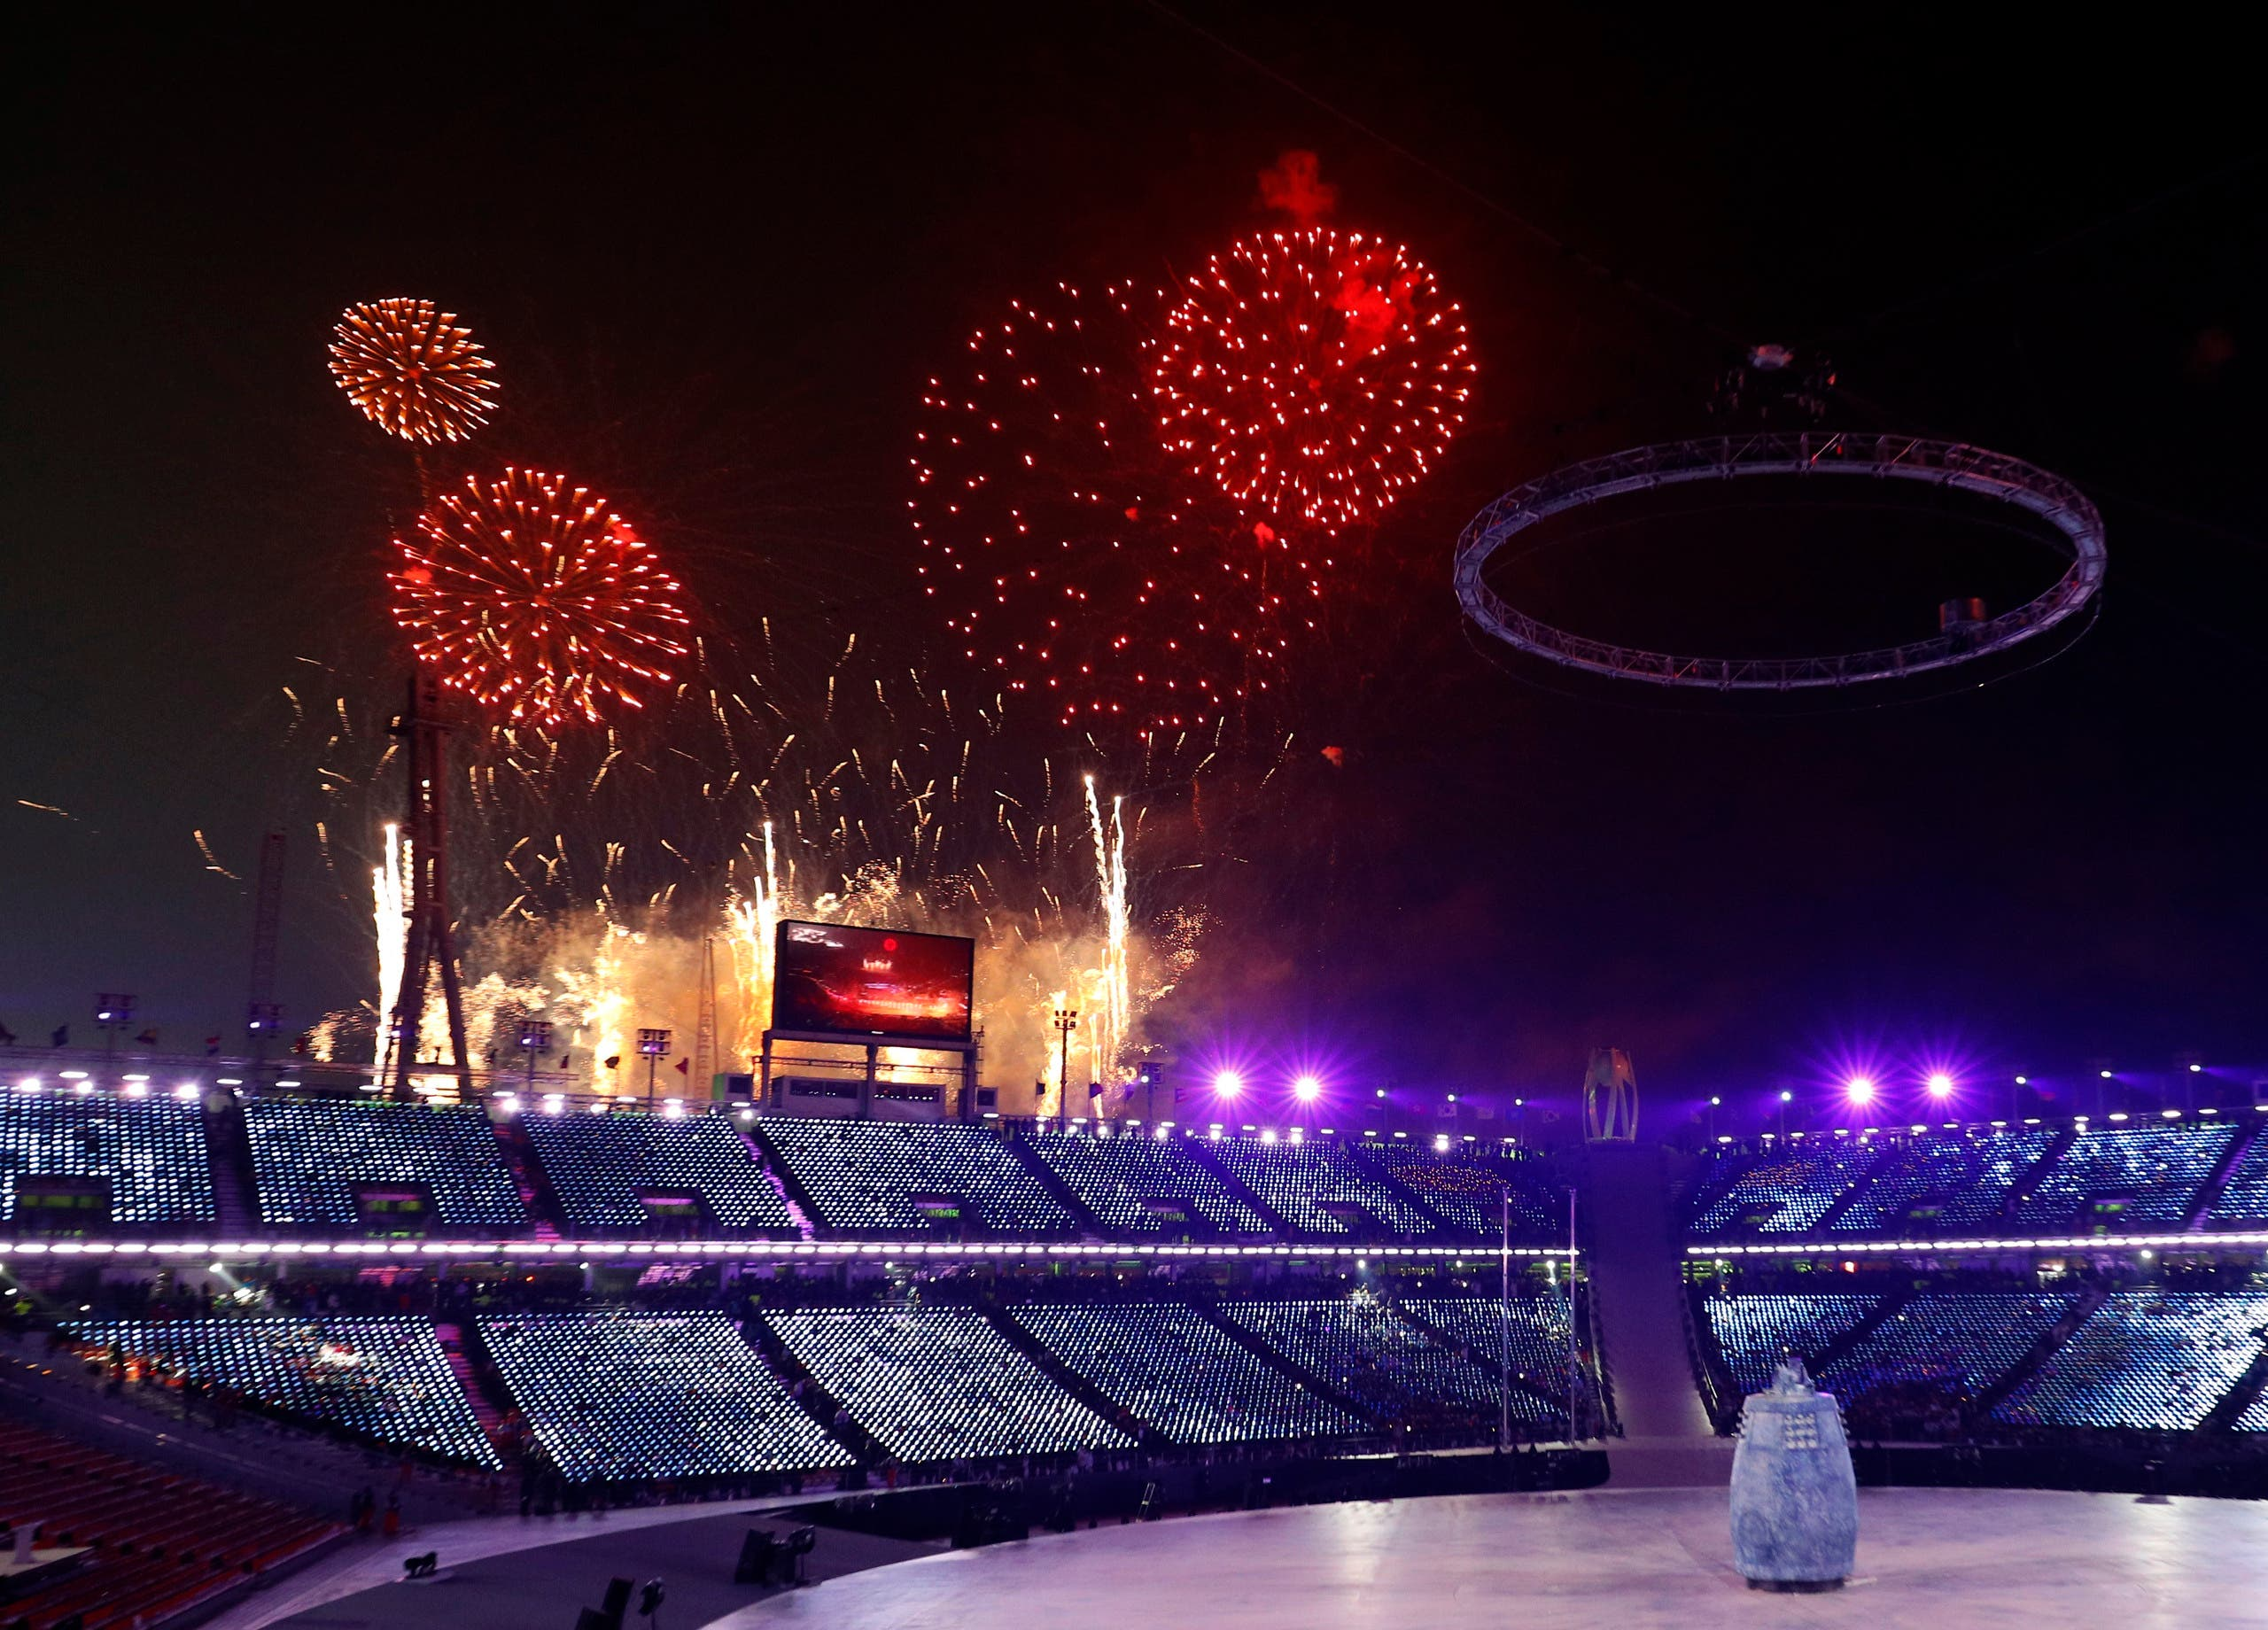 Pyeongchang 2018 Winter Olympics – Opening Ceremony – Pyeongchang Olympic Stadium- Pyeongchang, South Korea – February 9, 2018 - Fireworks during the opening ceremony.